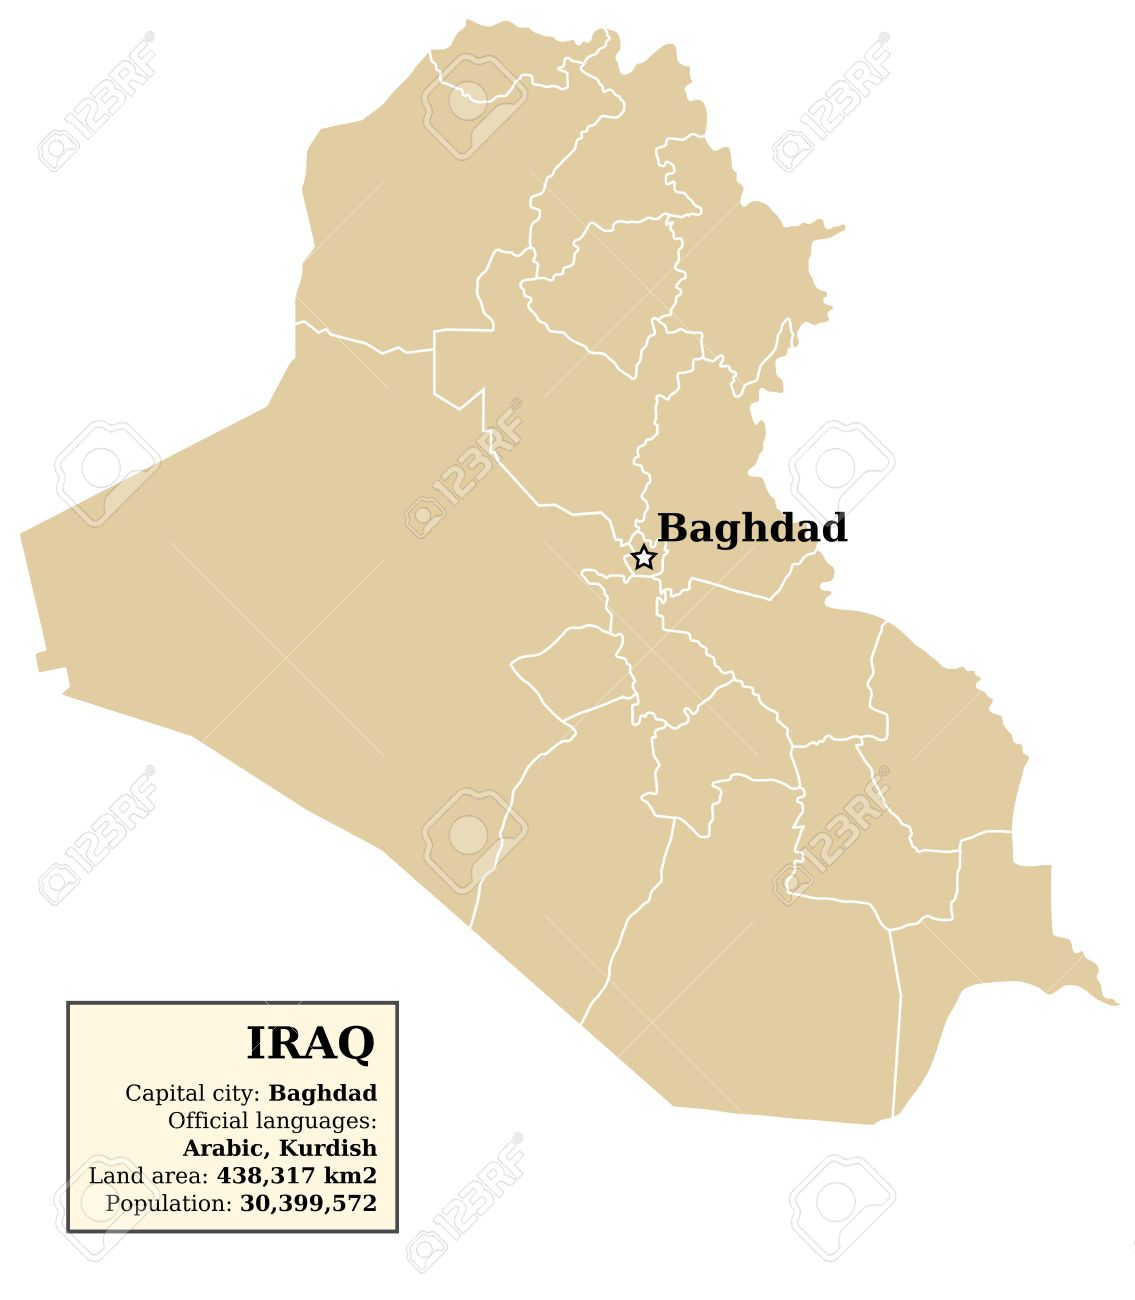 Iraq Map With Outlines Of Provinces Governorates Royalty Free - Iraq map outline